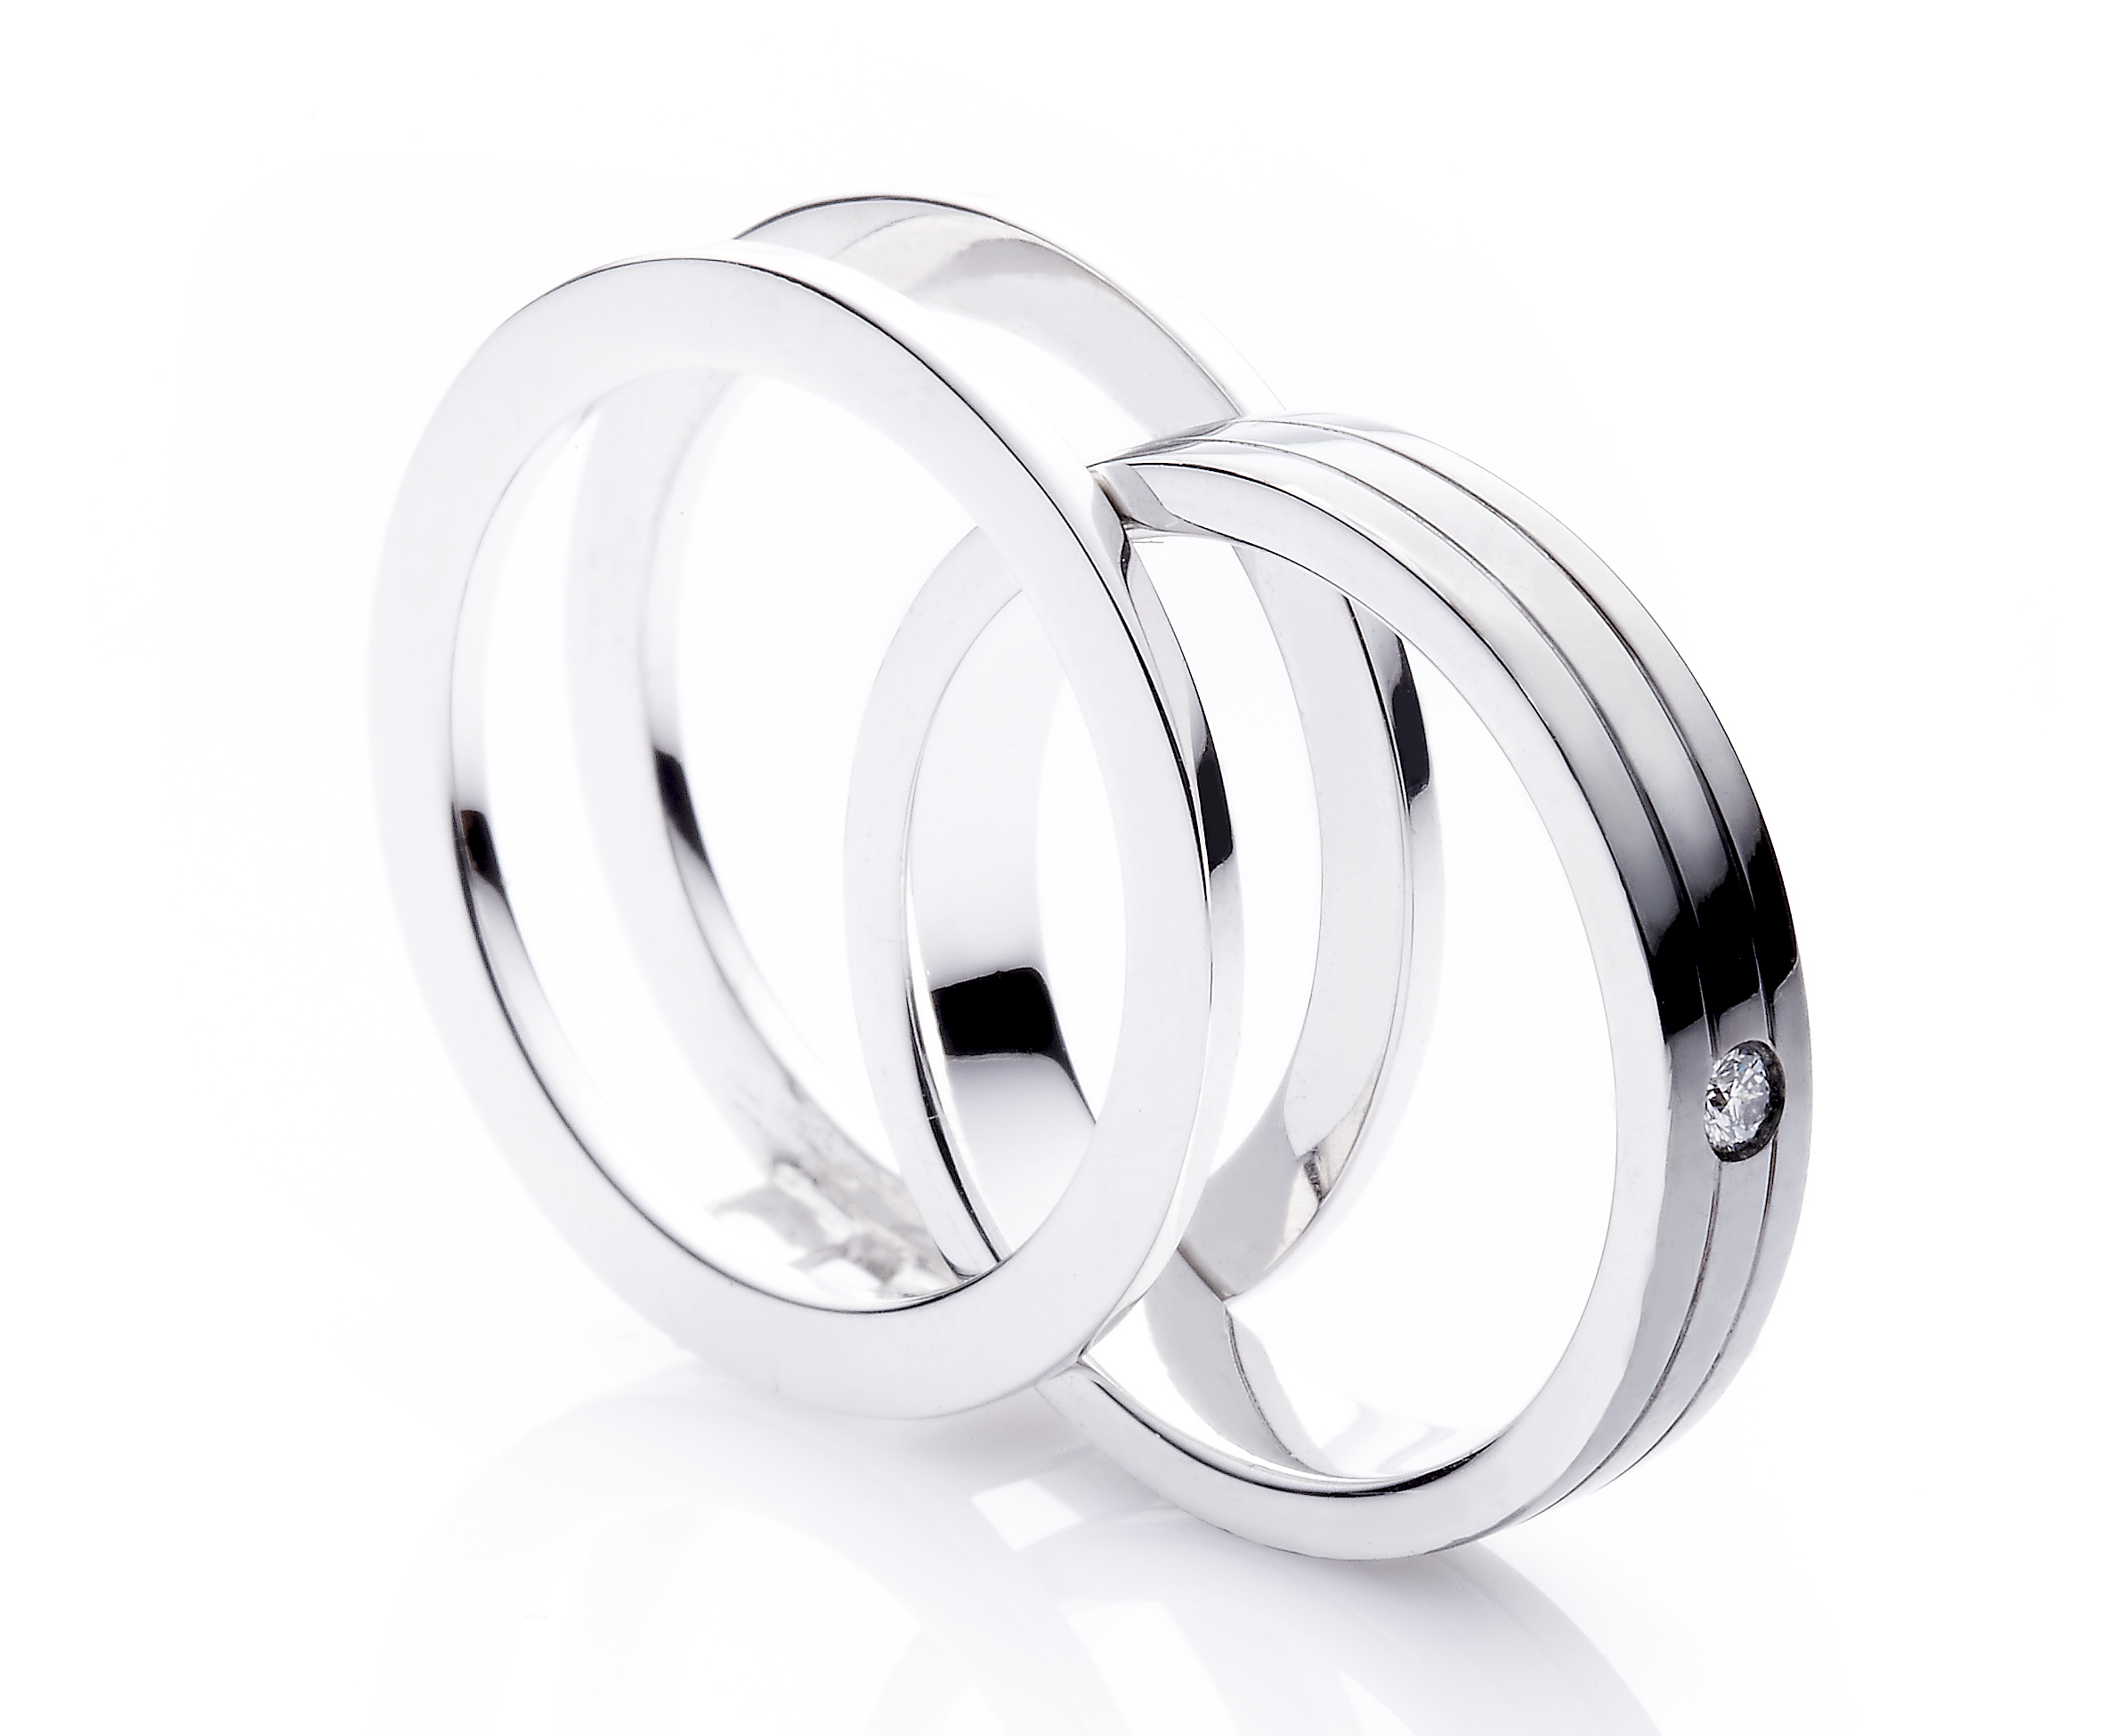 regard with get rings where sell ring to divorce wedding jewellery after decor a ideas